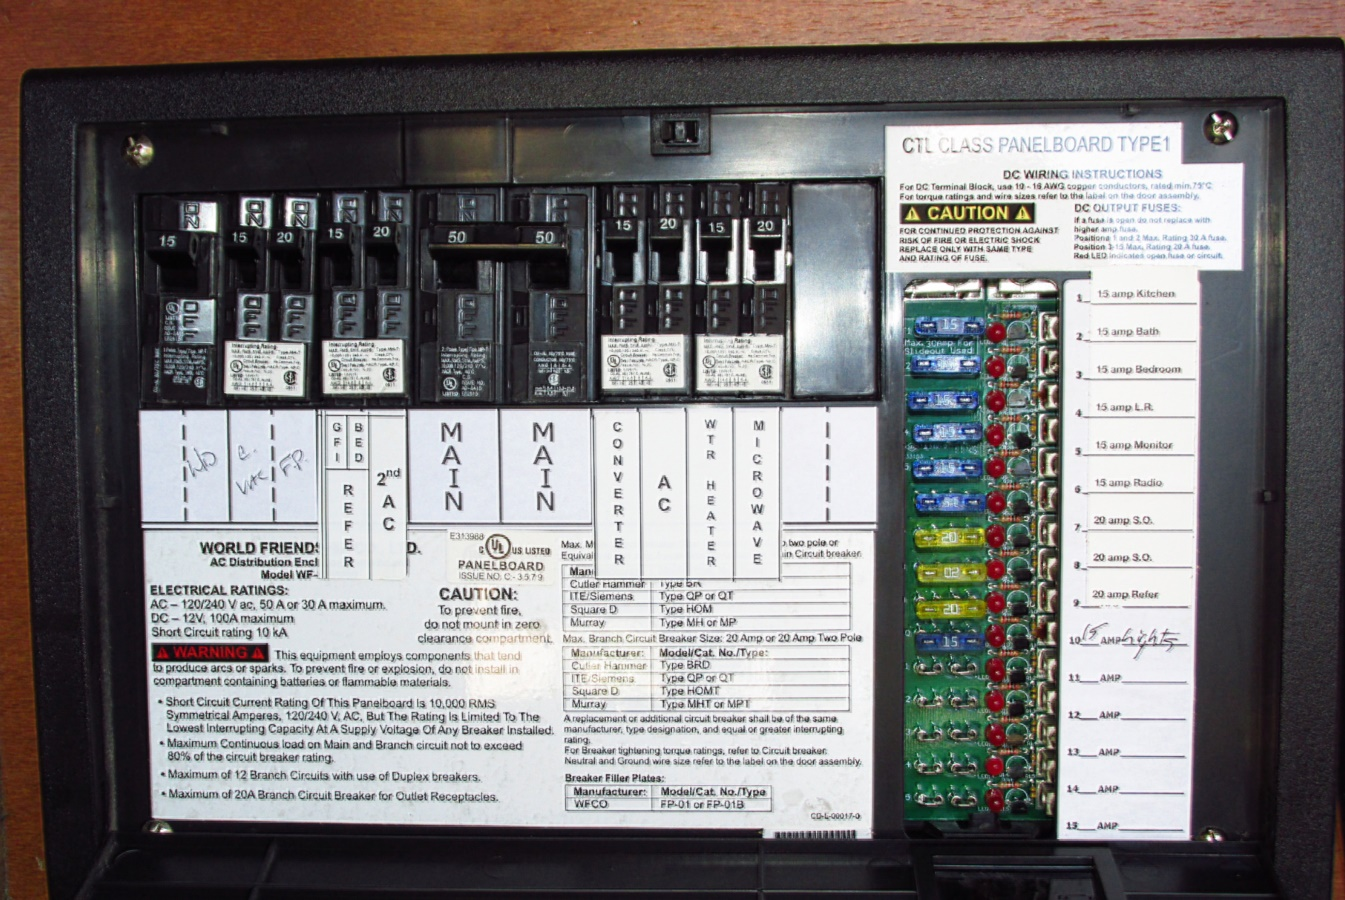 50 Amp Rv Wiring Diagram Main Panel Library Breaker Box View Click Image For Larger Version Name 255uvz7 Views 55 Size 4940 Electrical